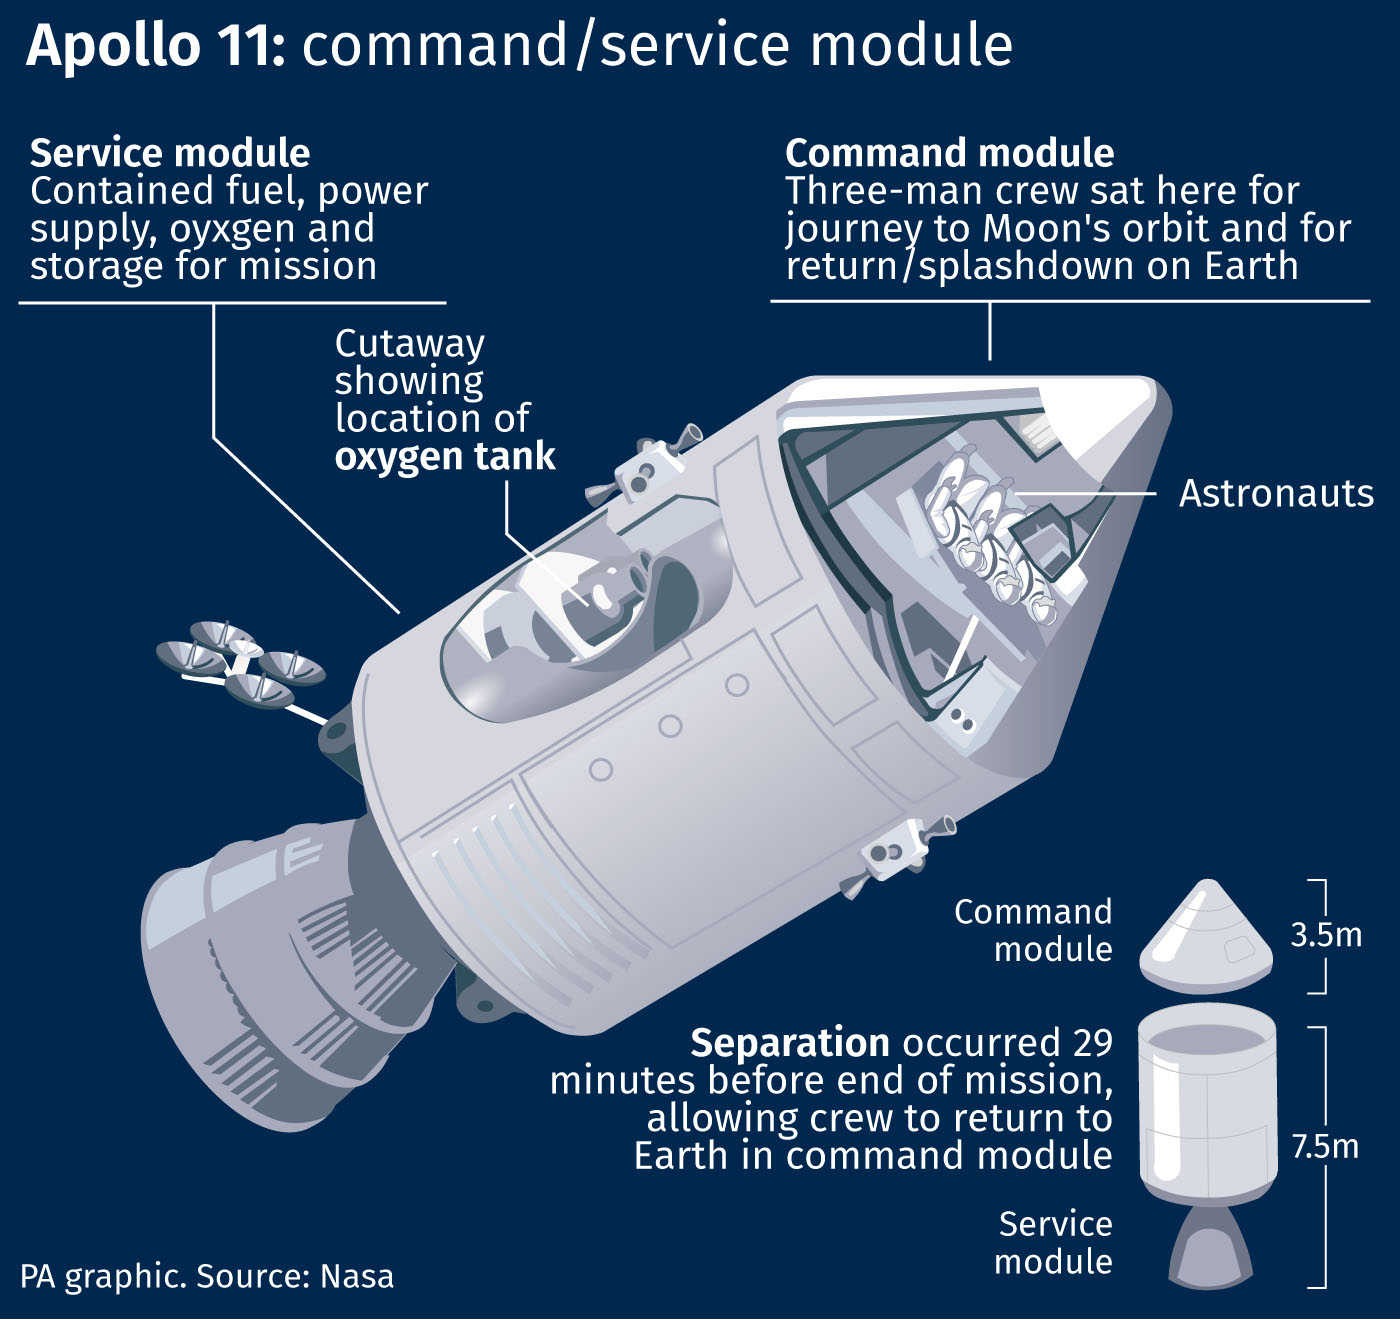 Apollo 11 command / service module